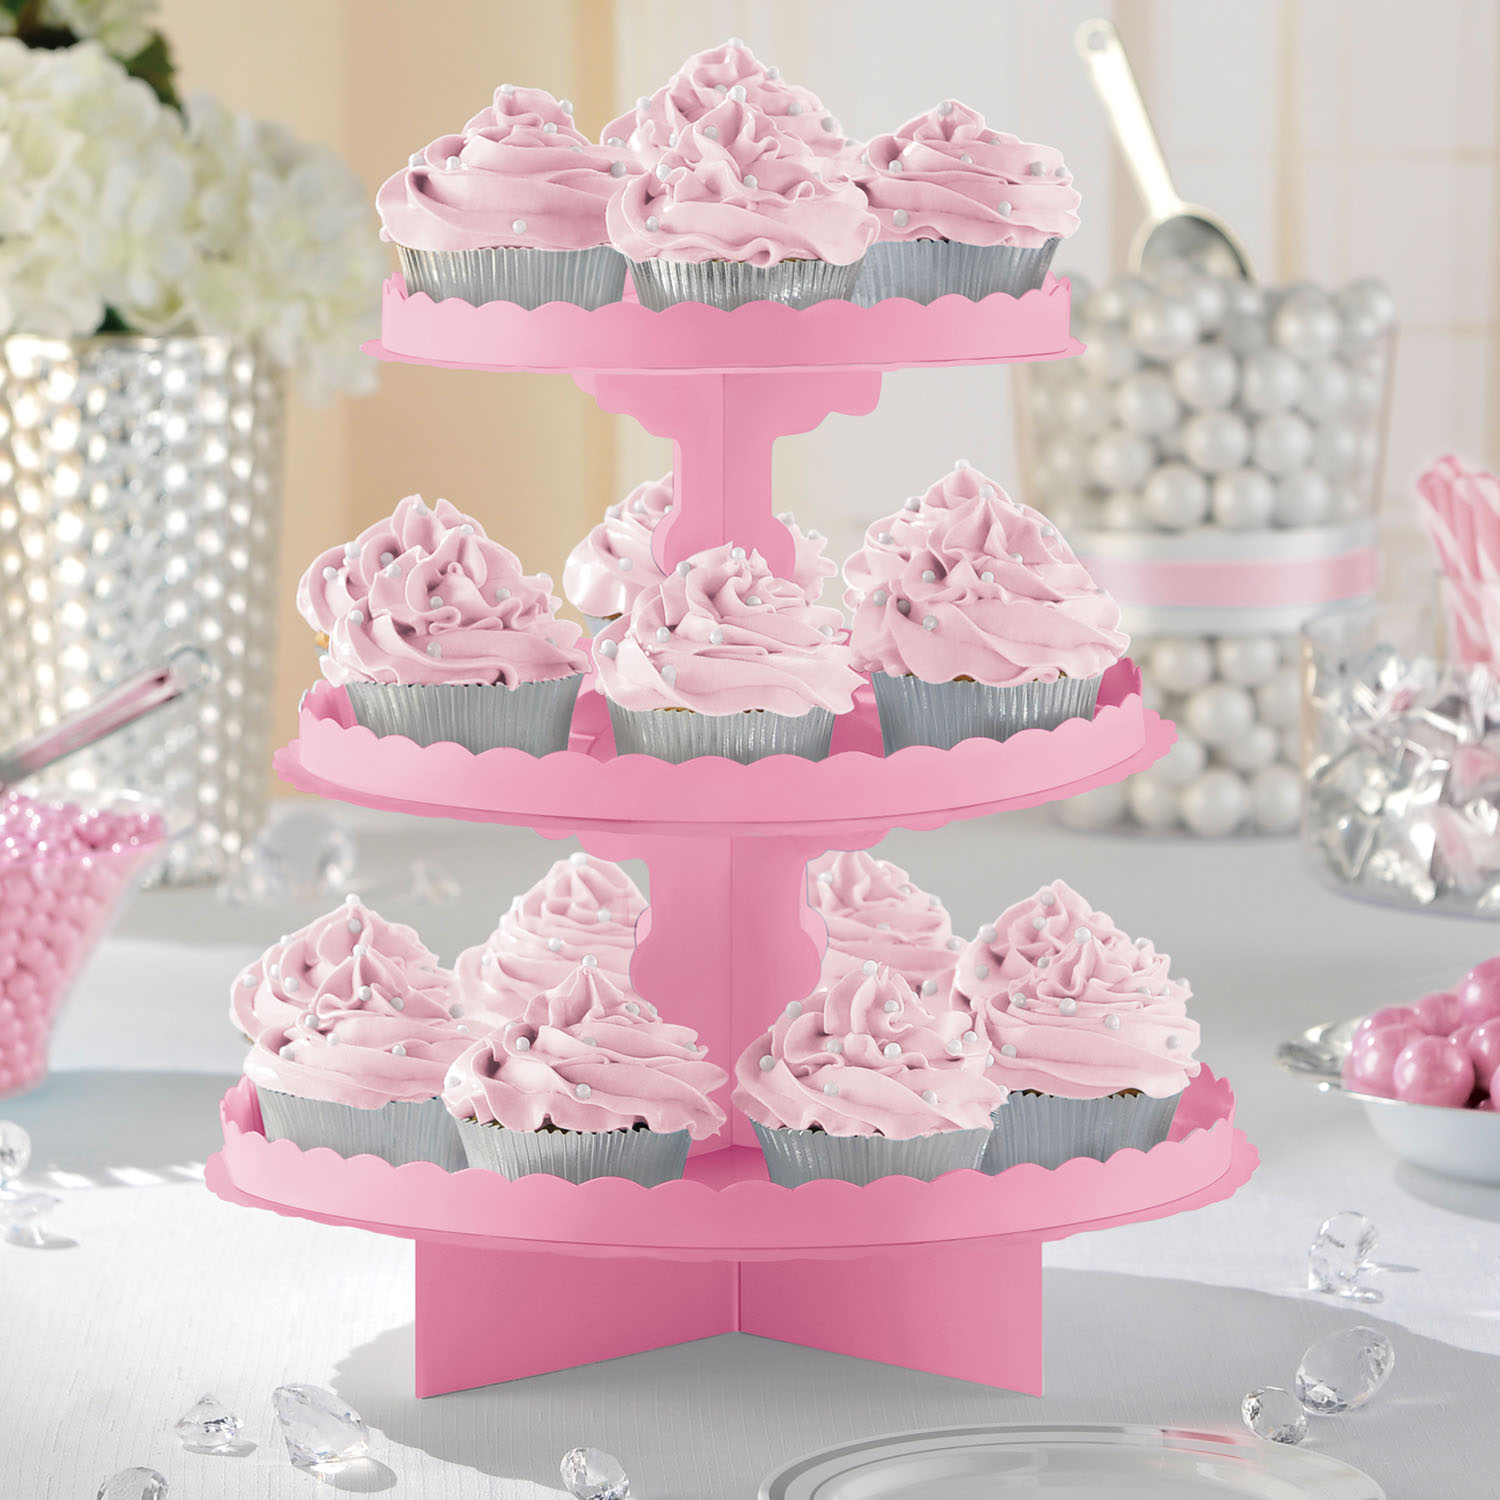 Pink Cupcake Stand Cardboard Food Serving 3 Tier Buffet Cake